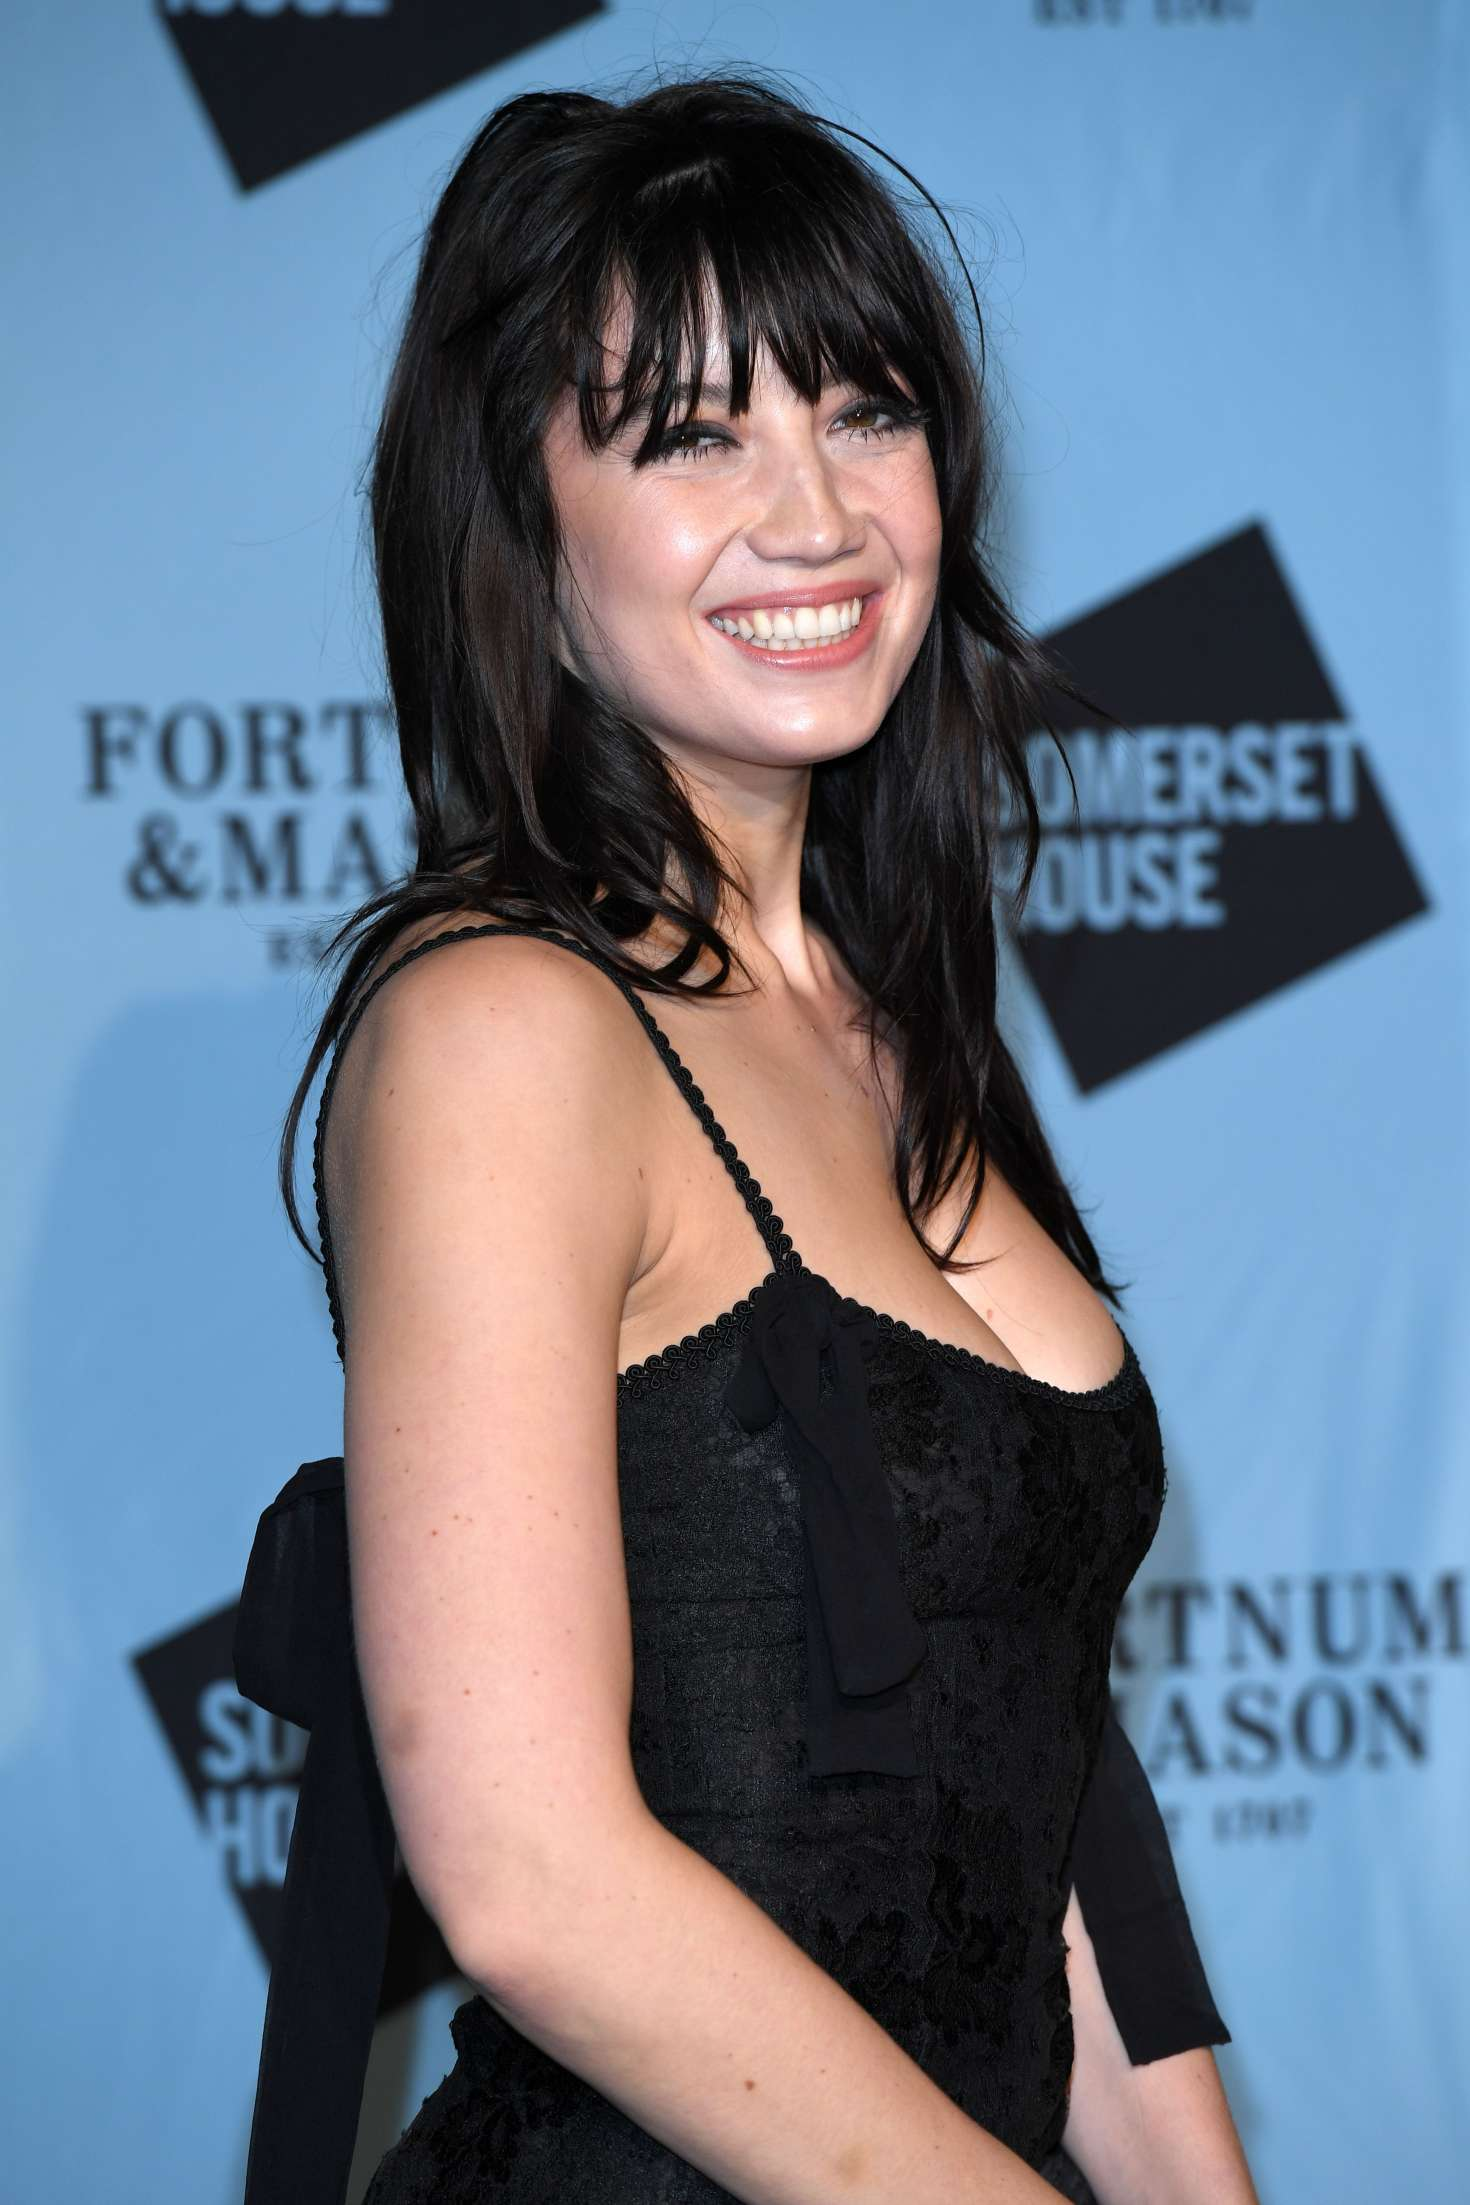 daisy lowe fortnum and mason vip launch party in london